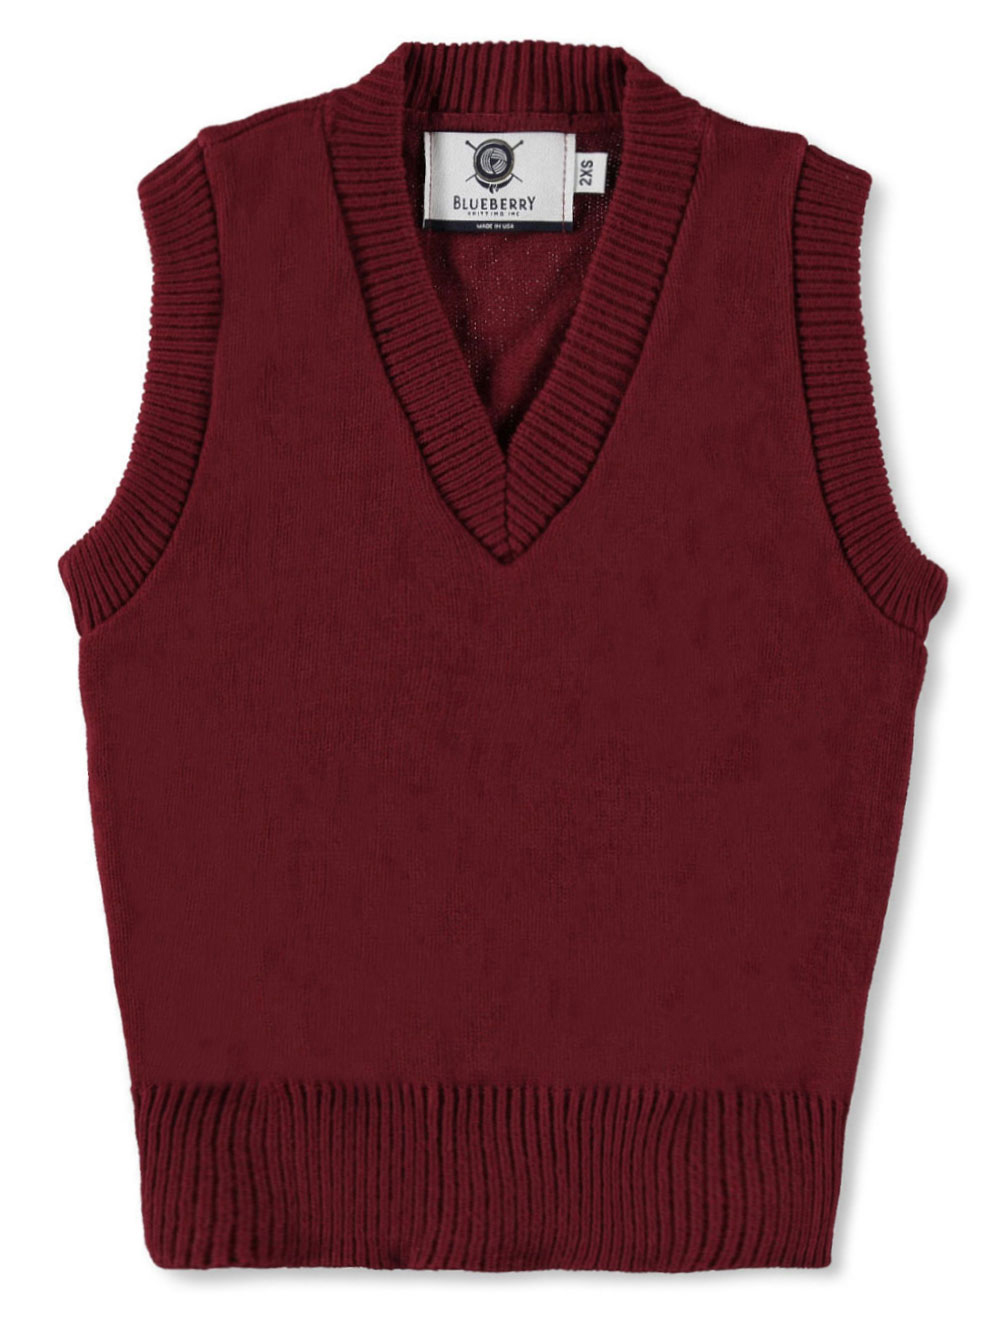 Blueberry Sweaters/Vests